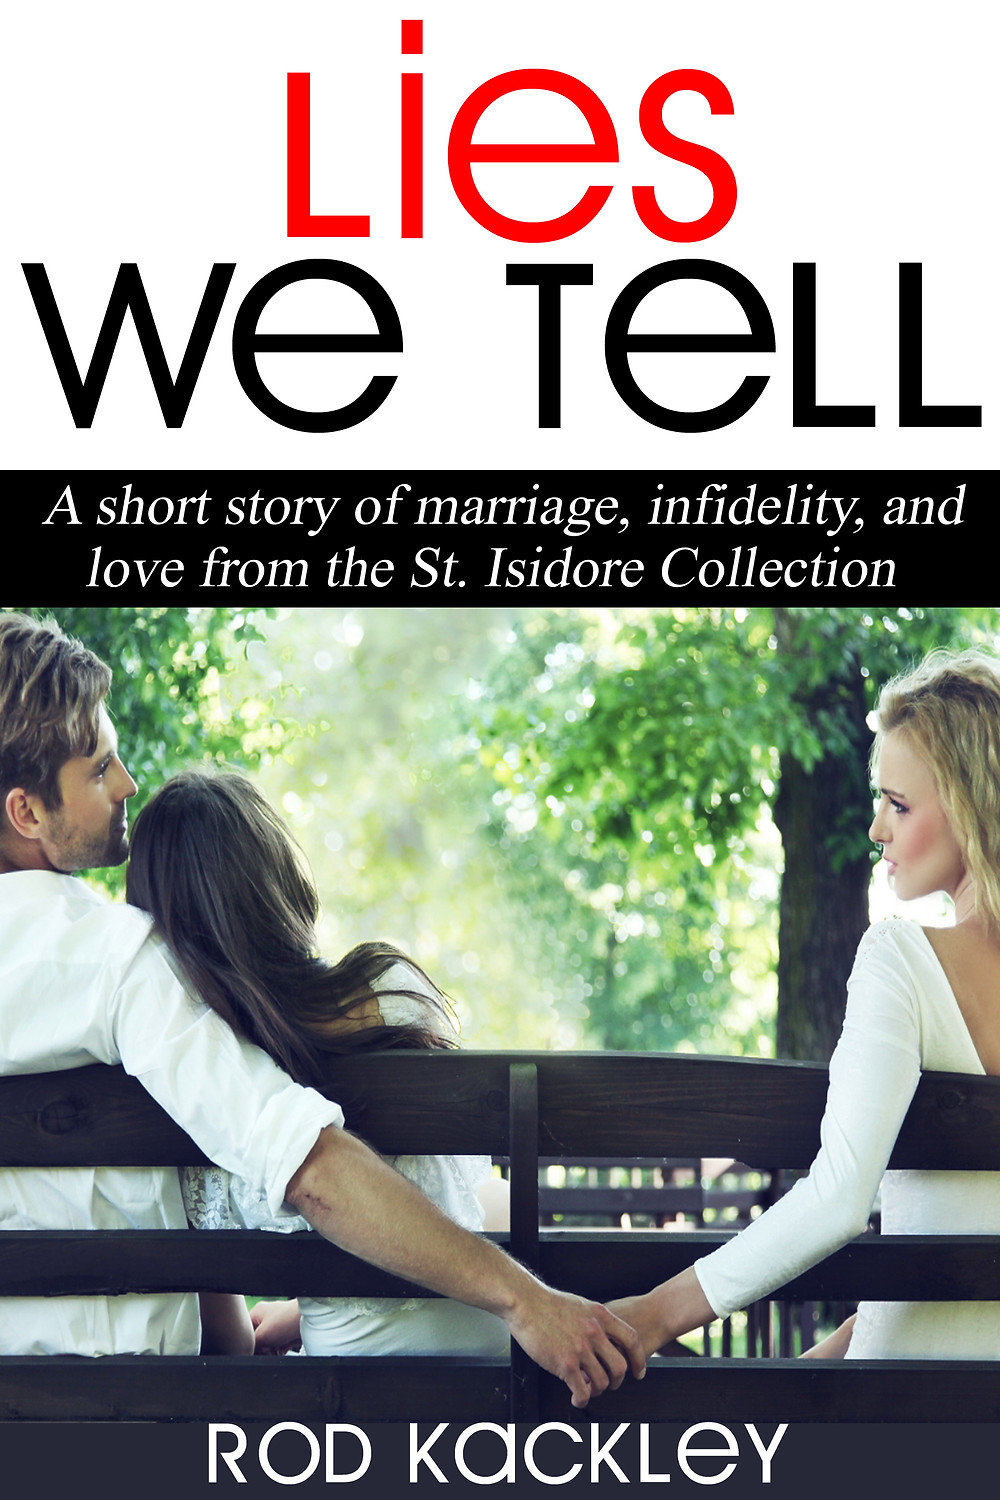 Lies We Tell by Rod Kackley